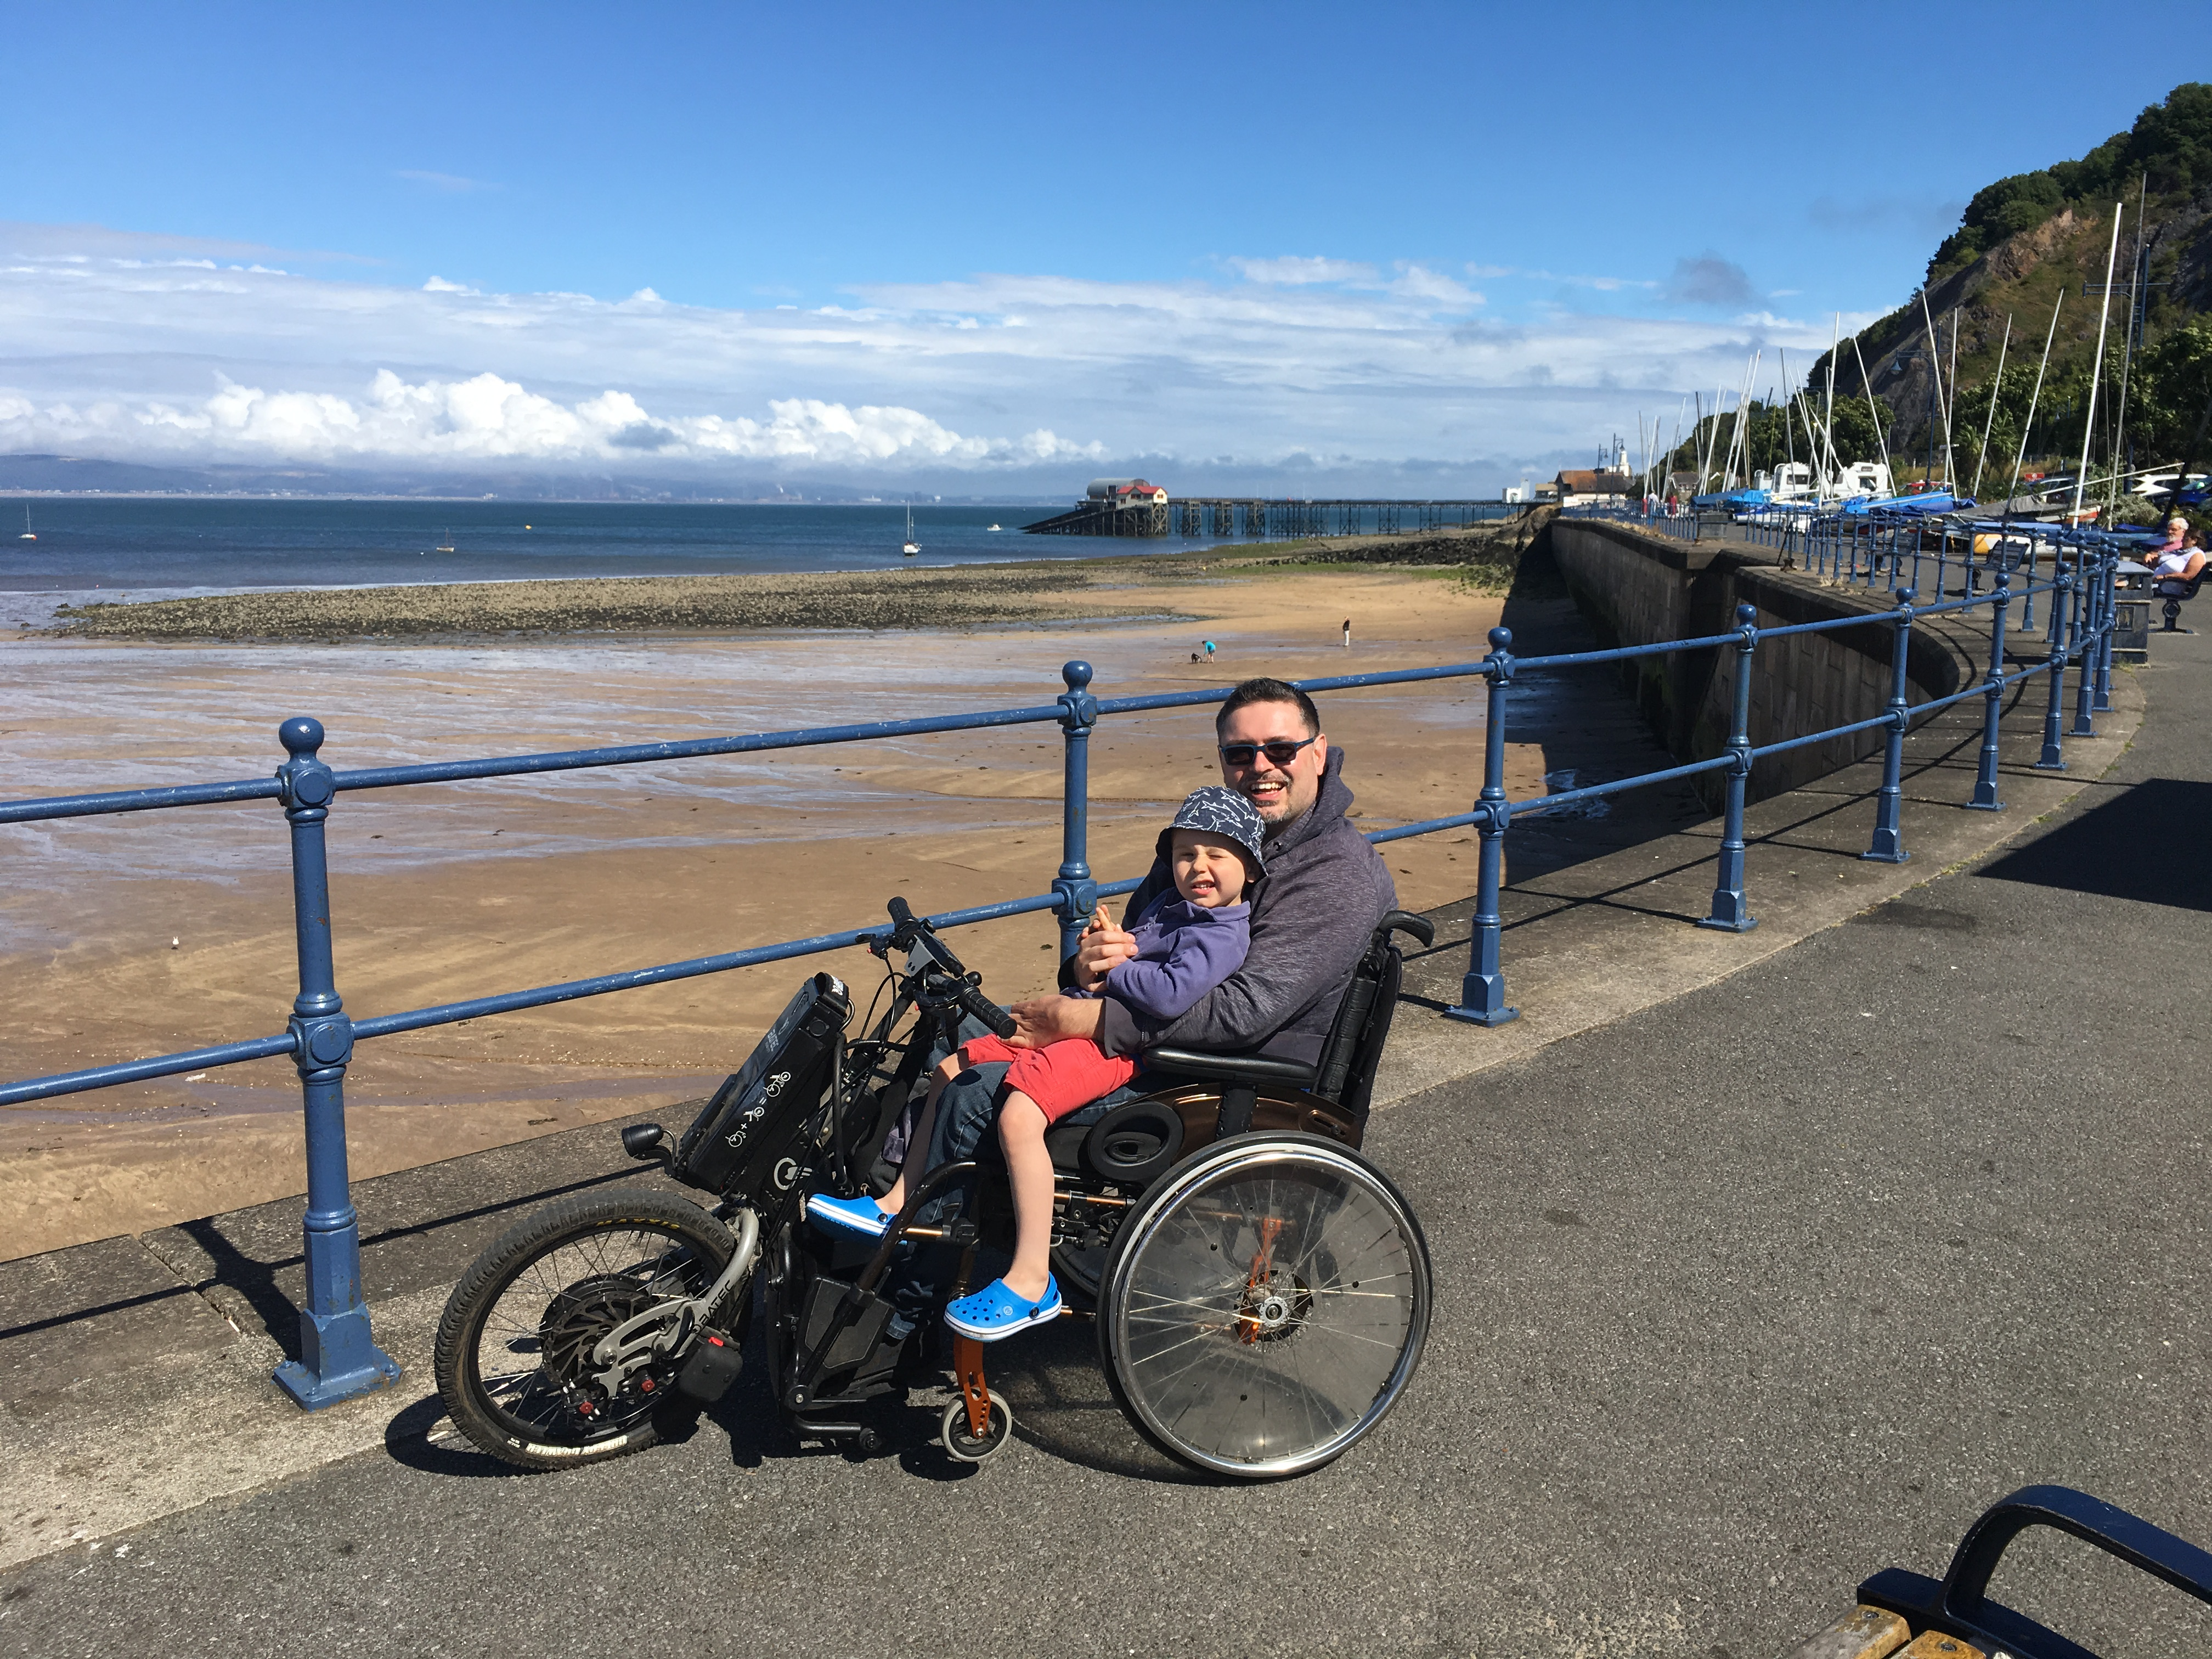 Richard on his Trike overlooking a sandy beach, Billy (nearly 4) sits on his lap